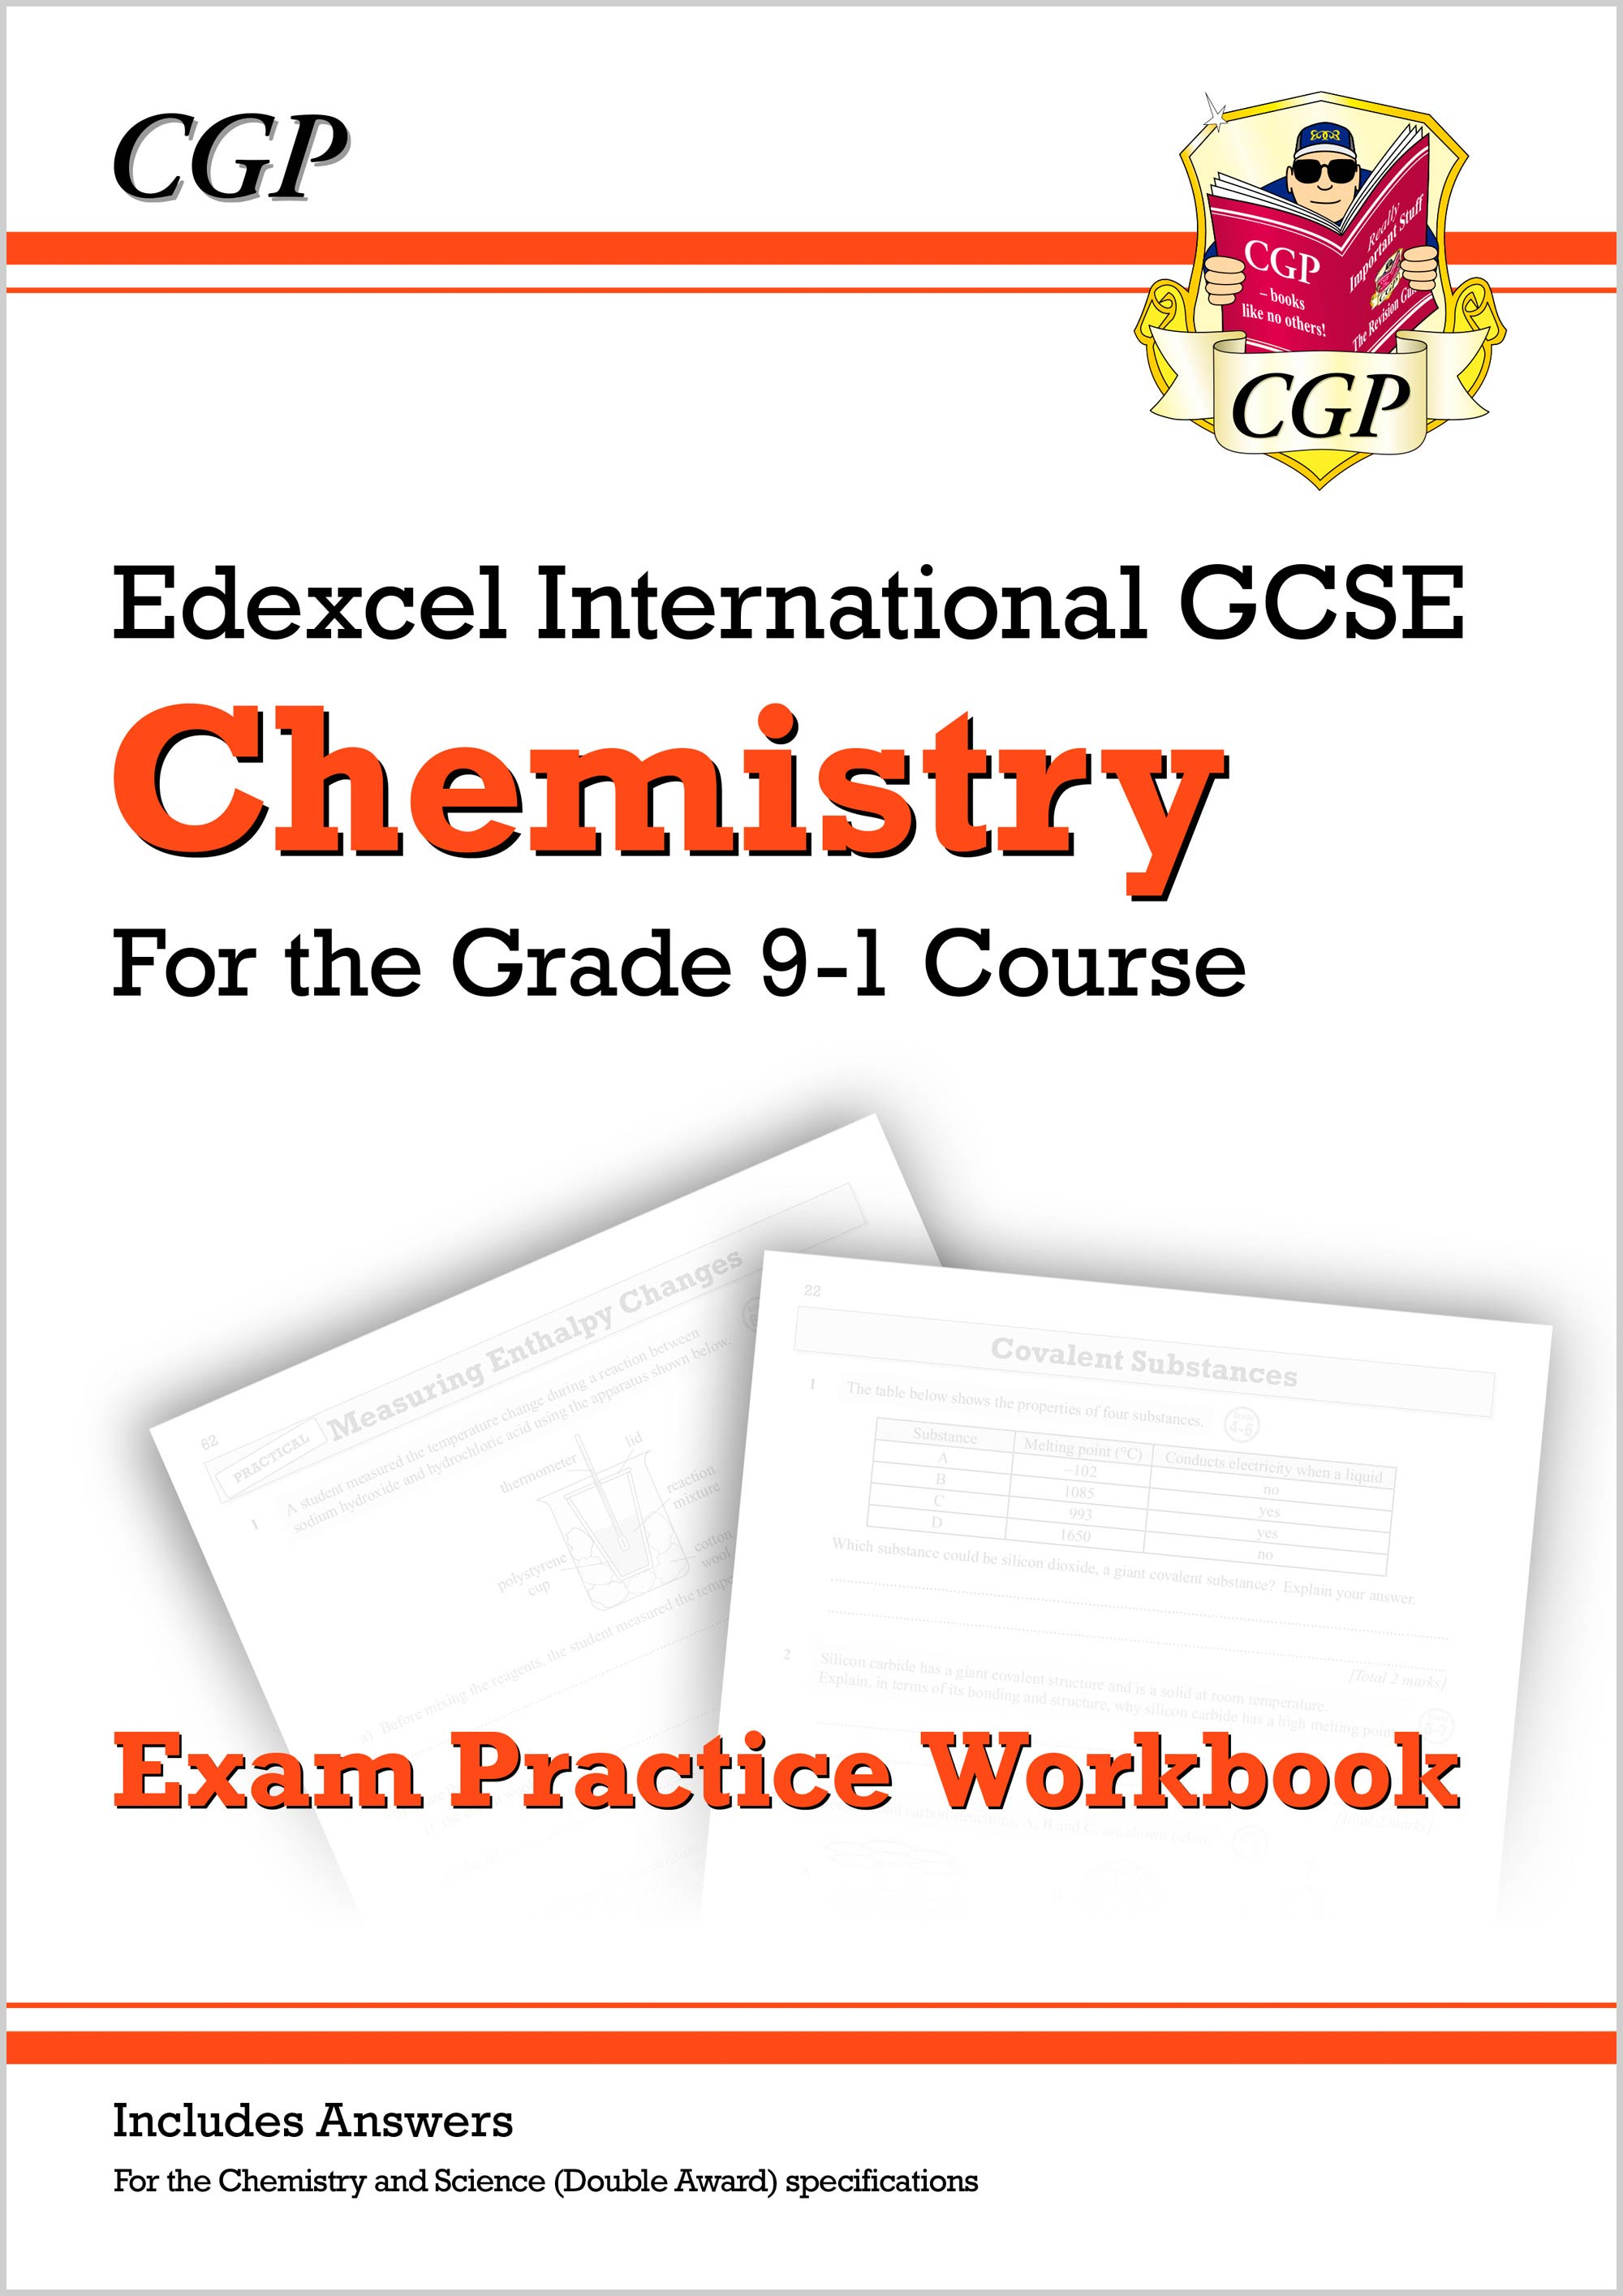 CEQI42DK - New Grade 9-1 Edexcel International GCSE Chemistry: Exam Practice Workbook (includes Answ